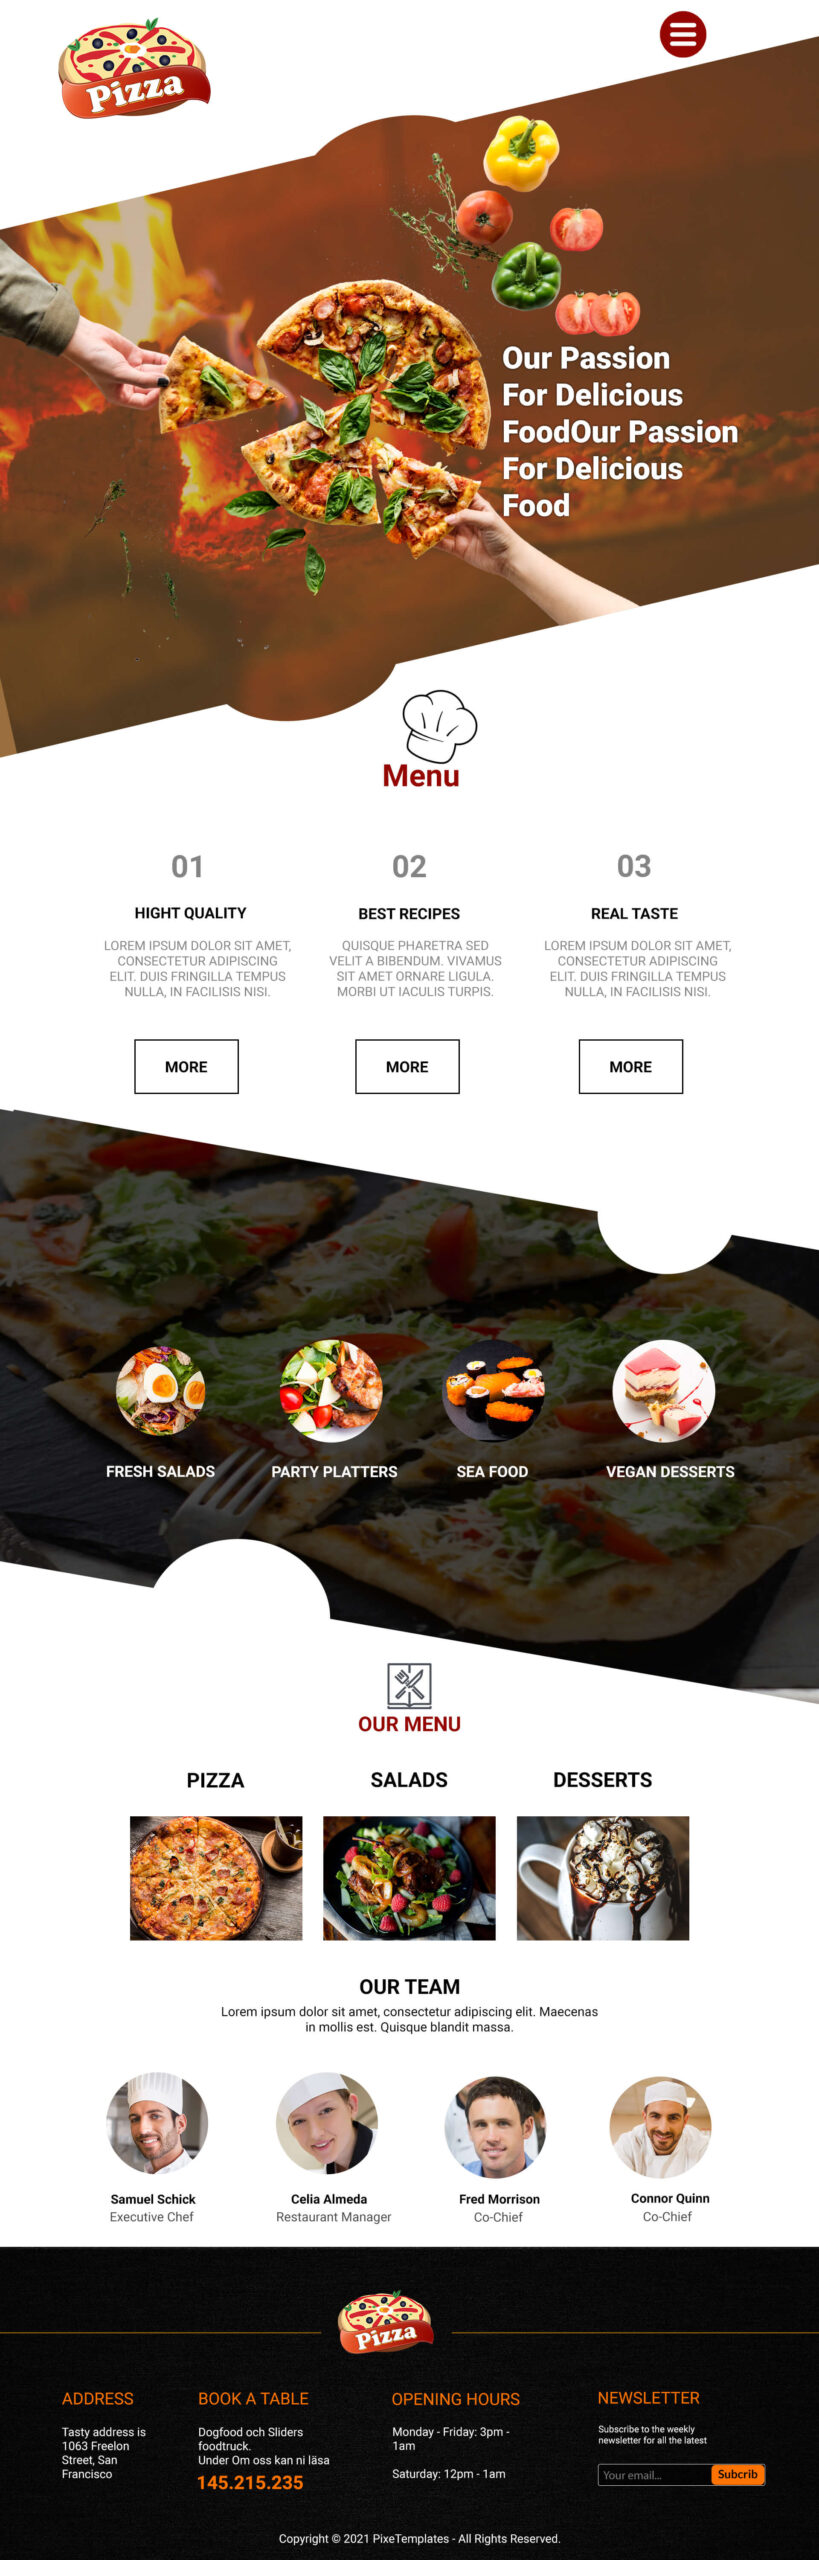 Free Website Template for Pizza and Fast Food Company